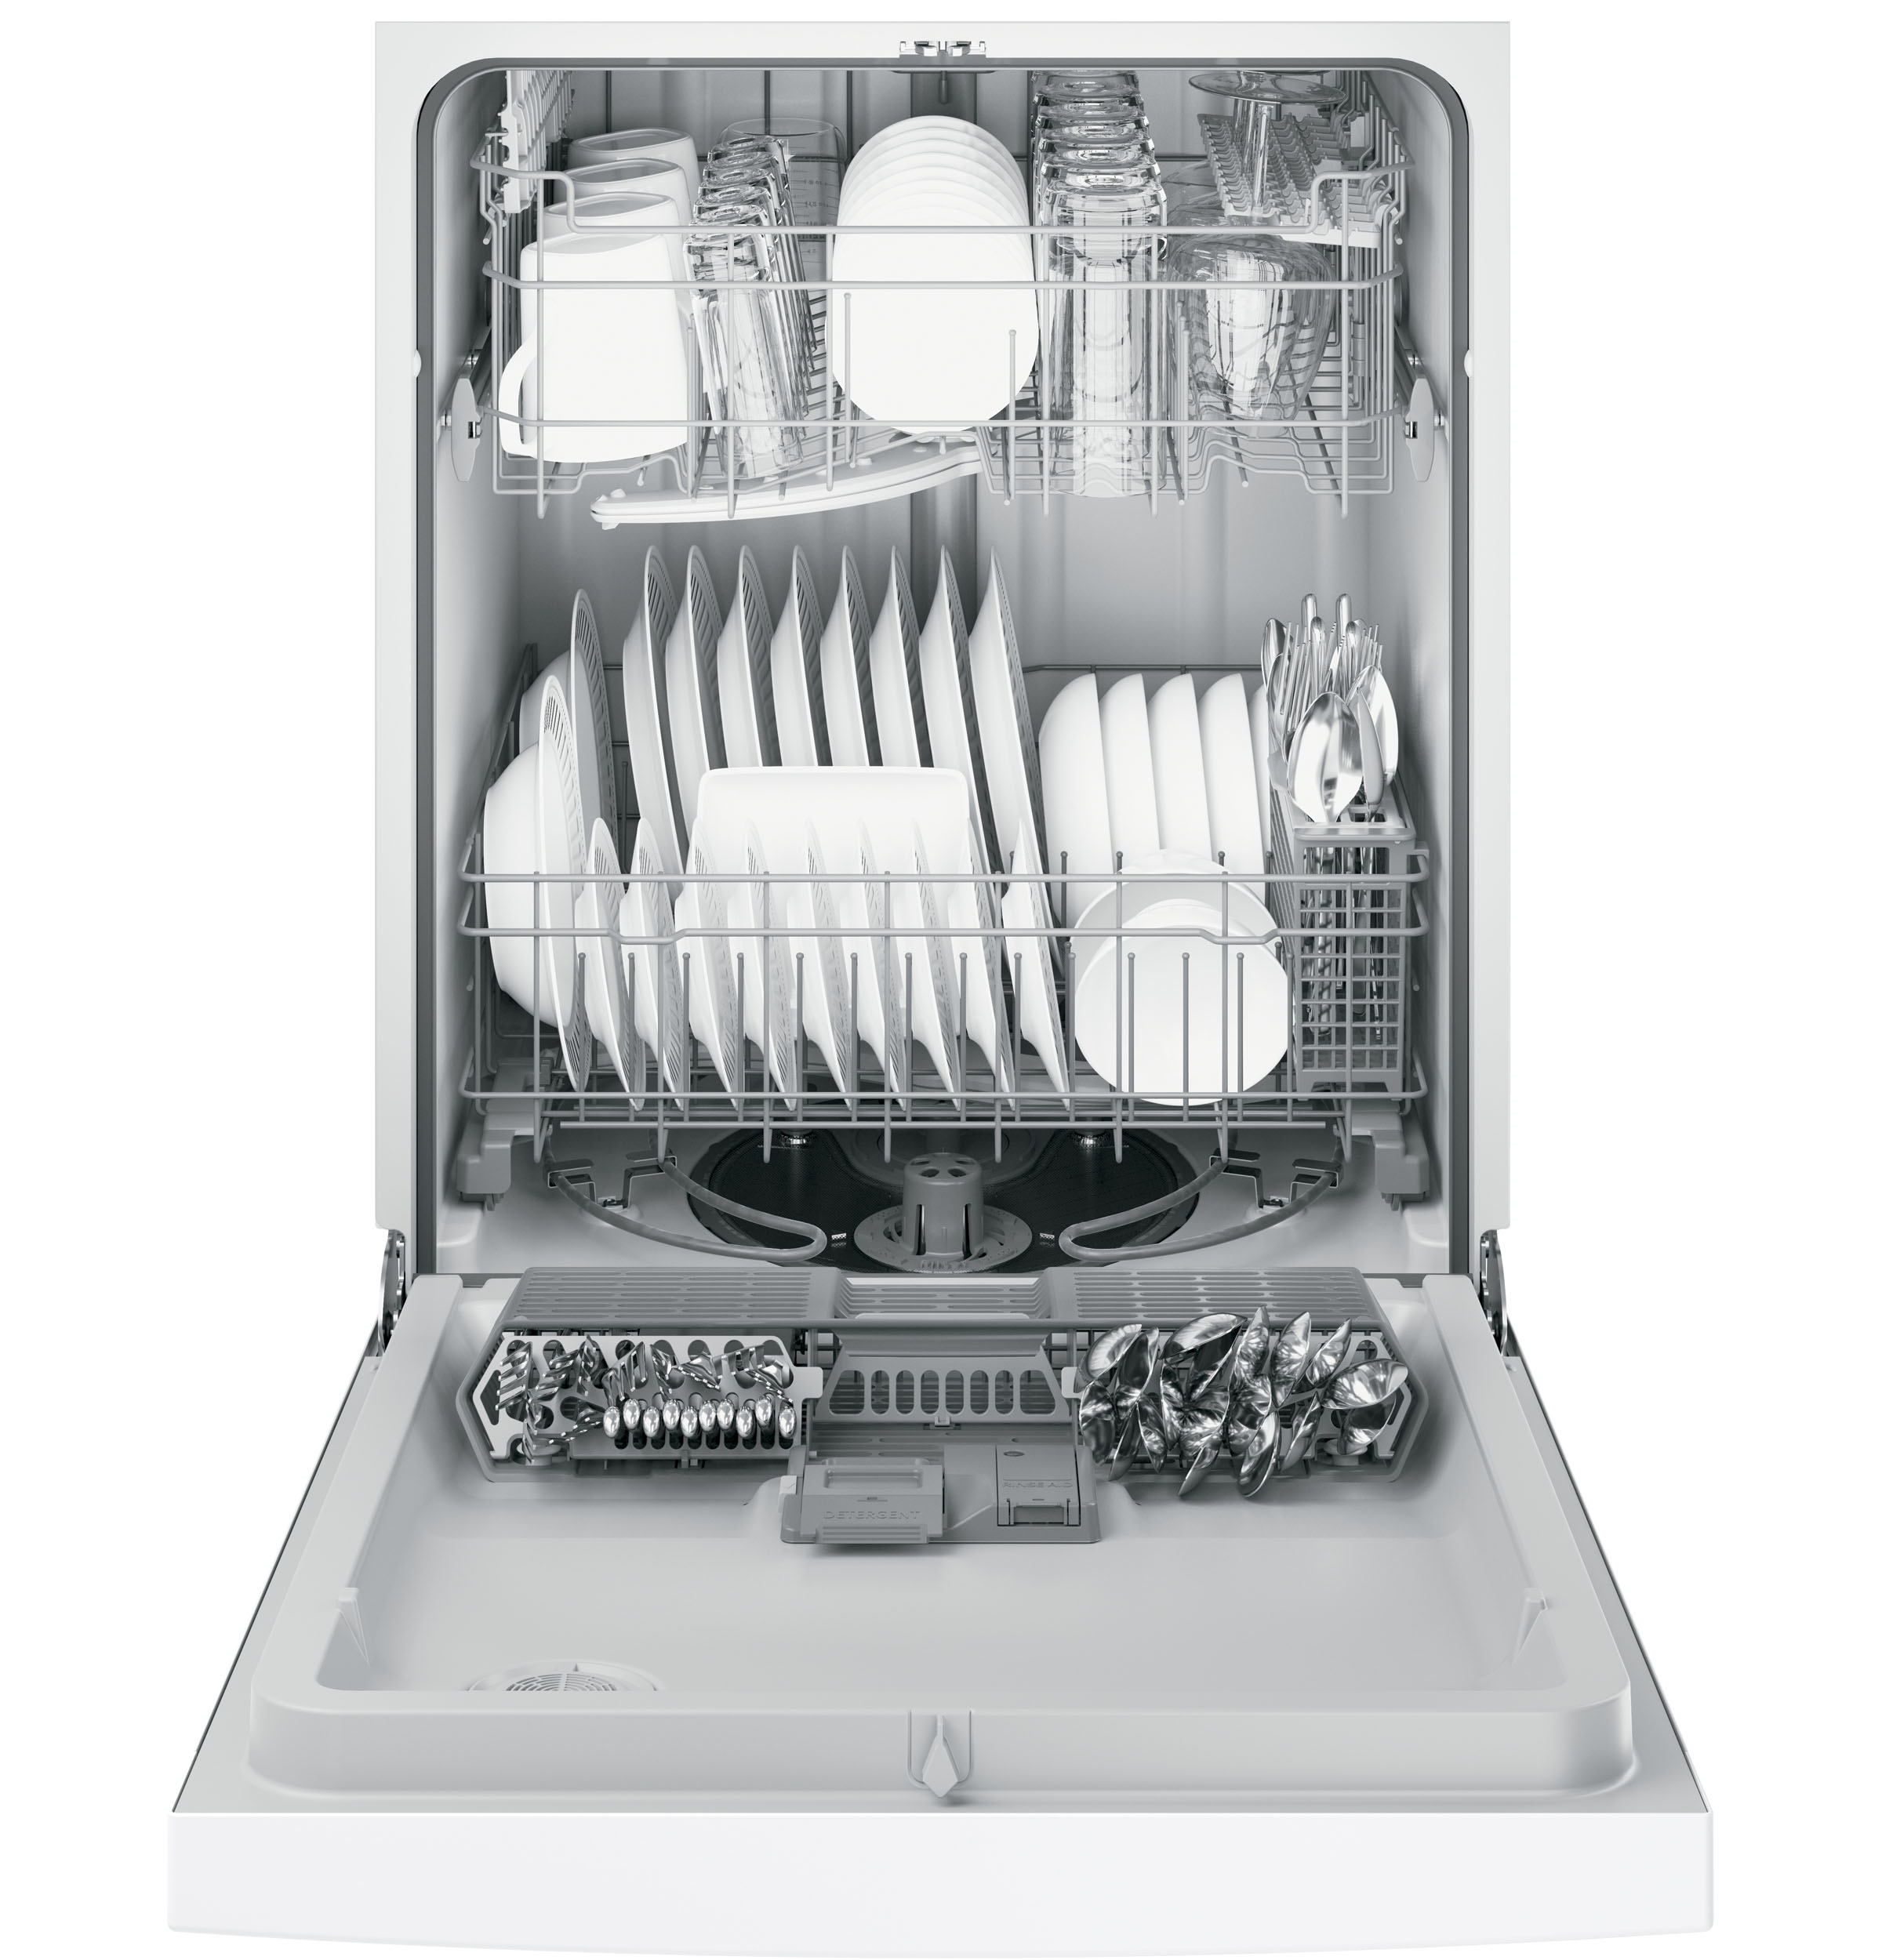 Ge Dishwasher With Front Controls Gdf520pgjww Ge Appliances